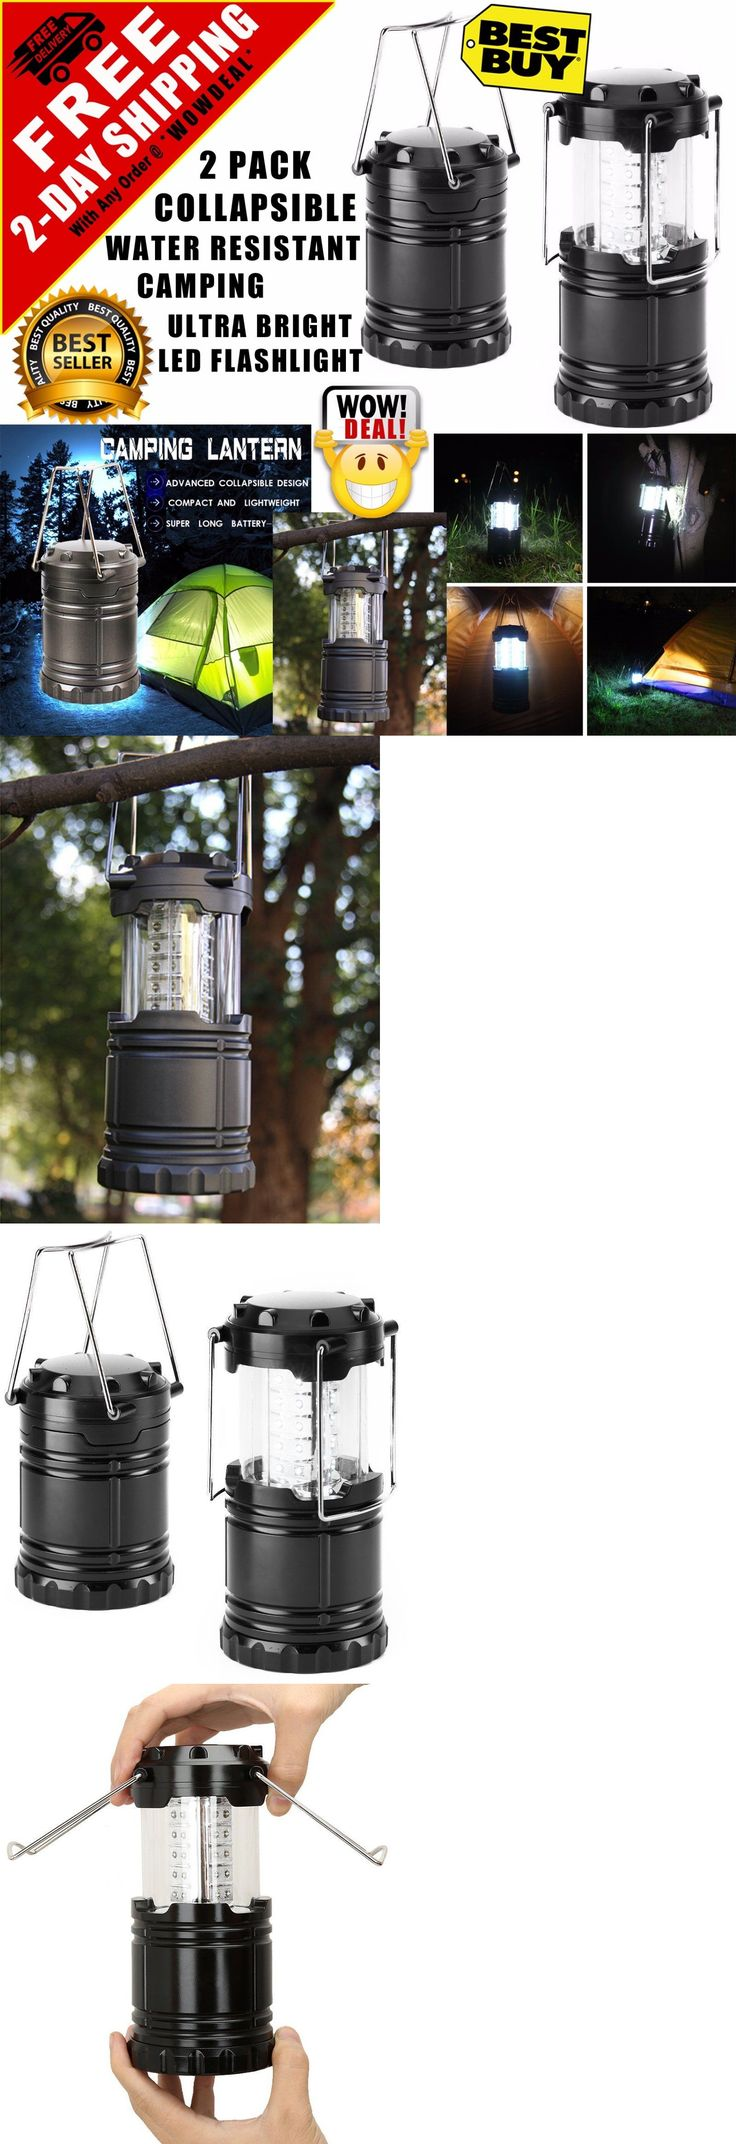 Lanterns 168867: 2 Portable Collapsible Led Lanterns Tac Light Lamps Emergency Camping As Seen Tv -> BUY IT NOW ONLY: $110 on eBay!